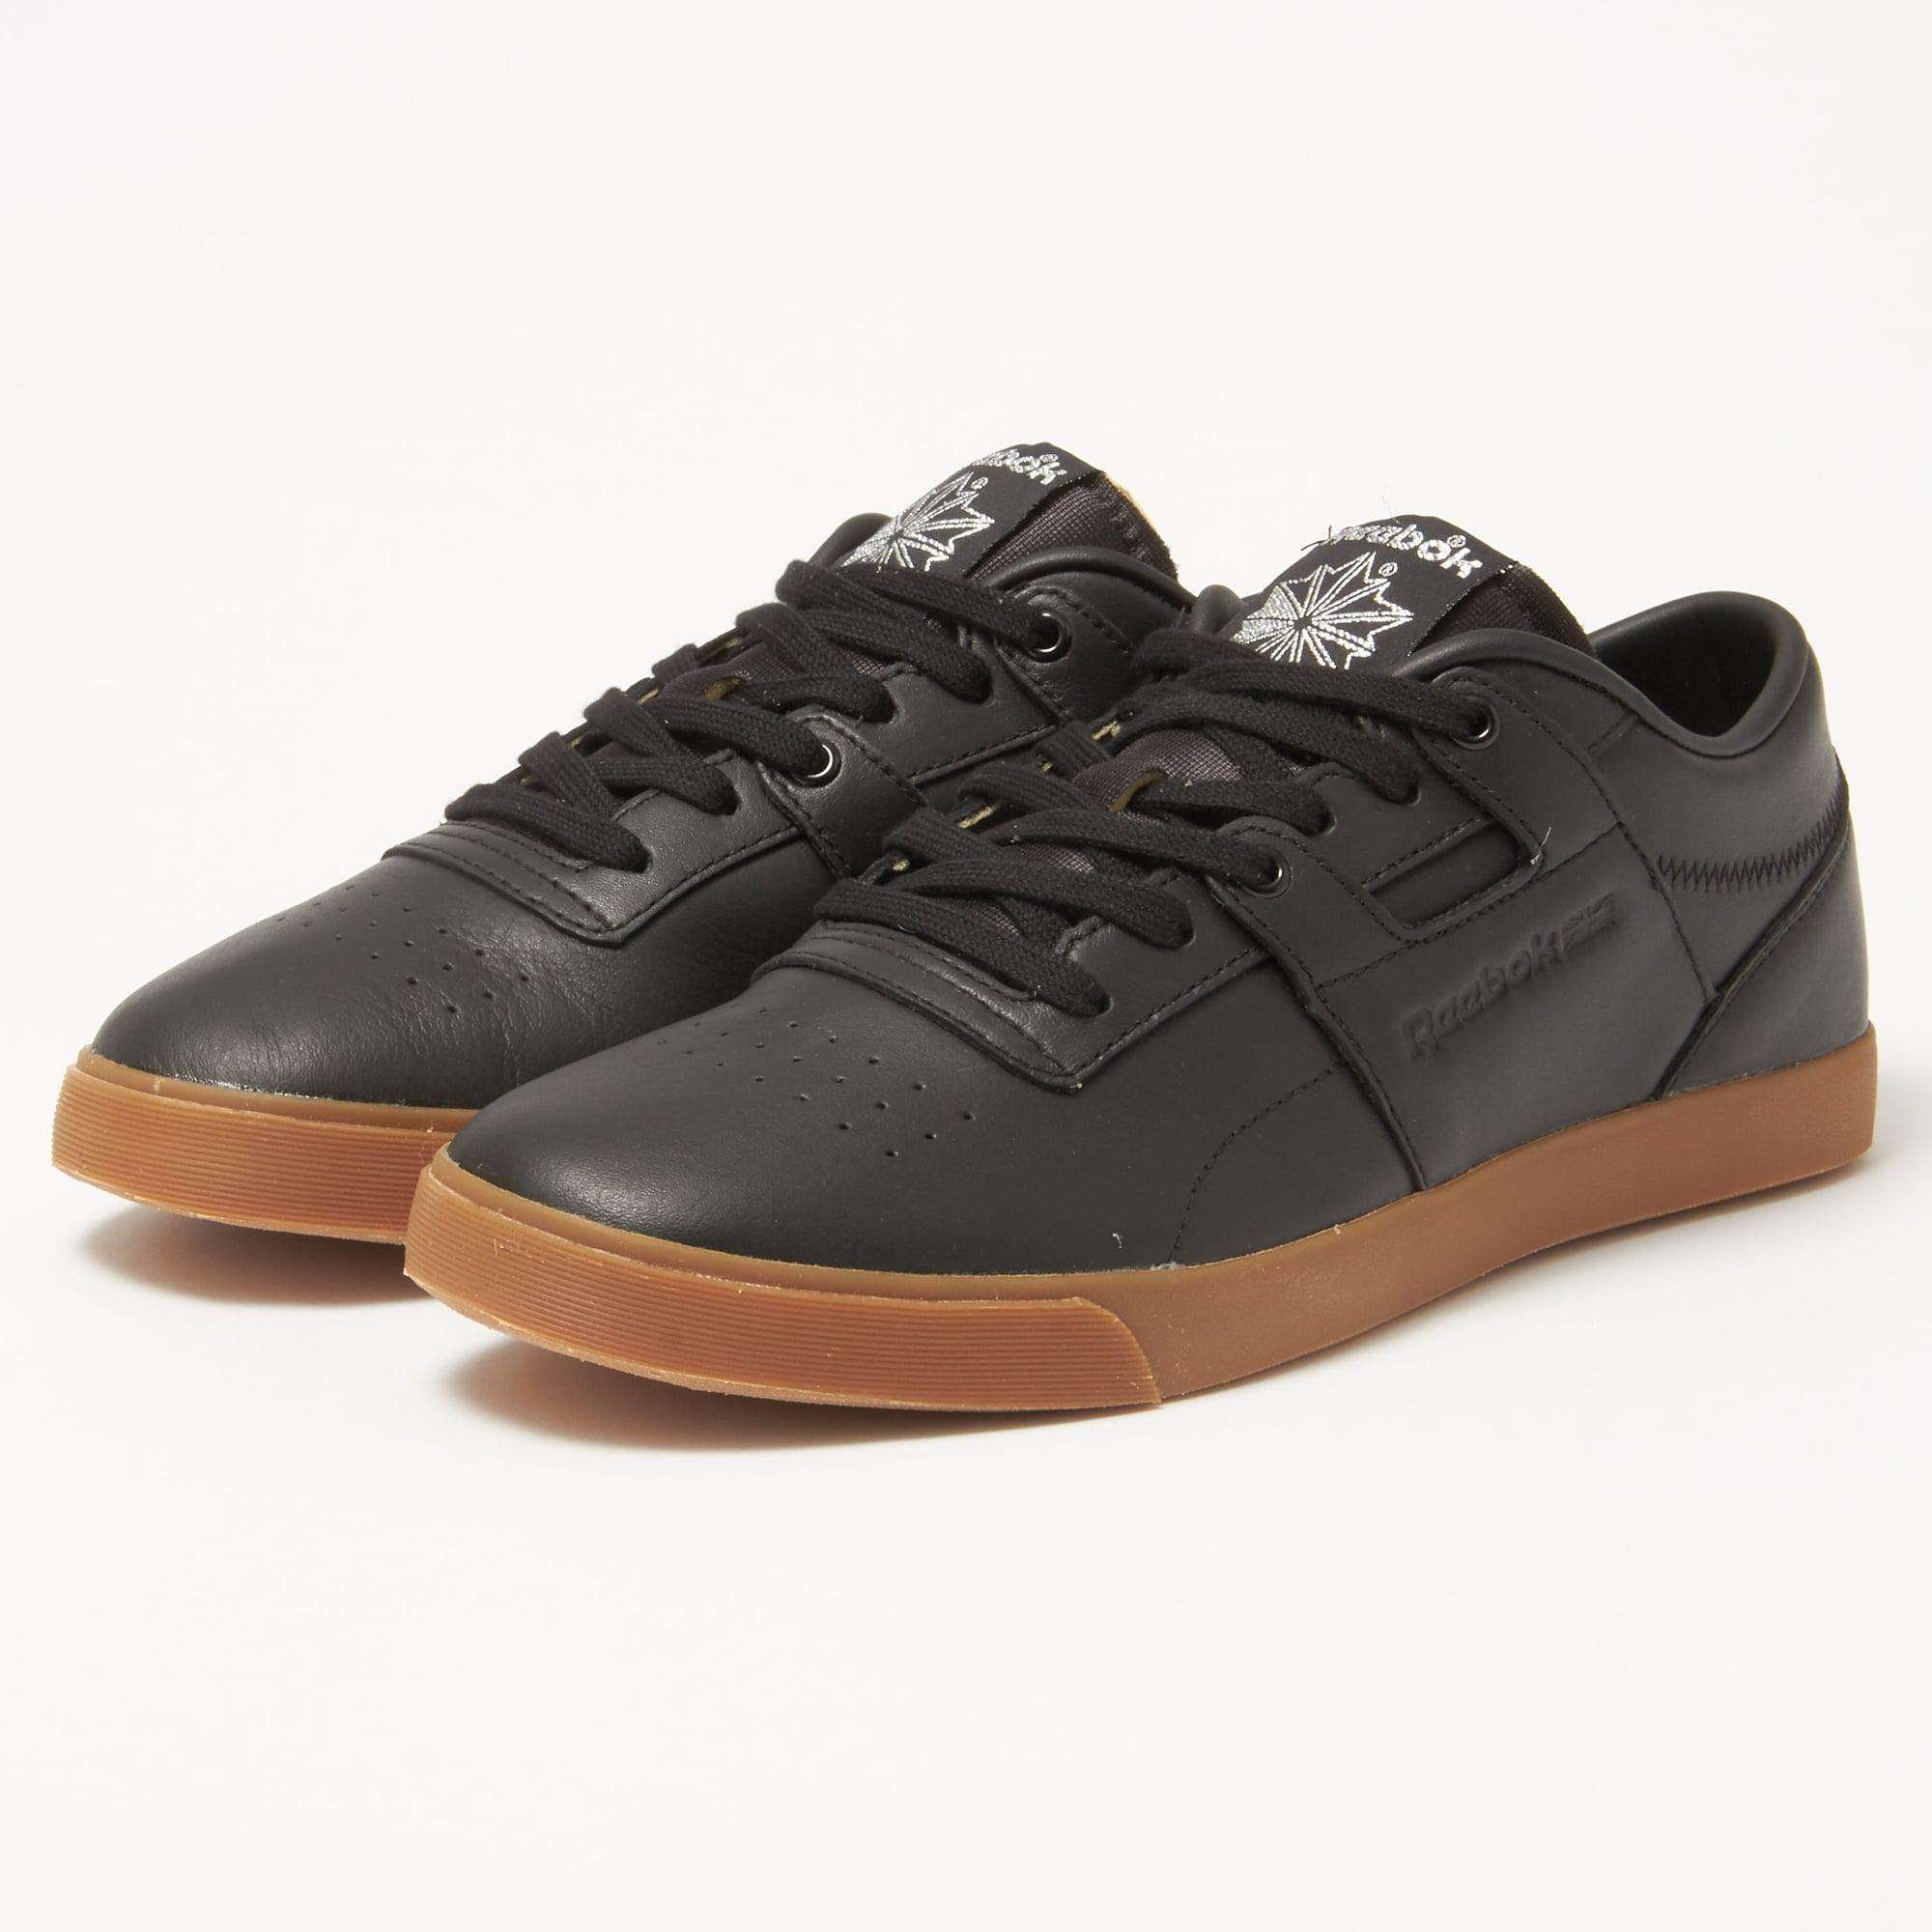 207a14162e Reebok Workout Low Clean Fvs Gum Black Sneakers in Black for Men - Lyst